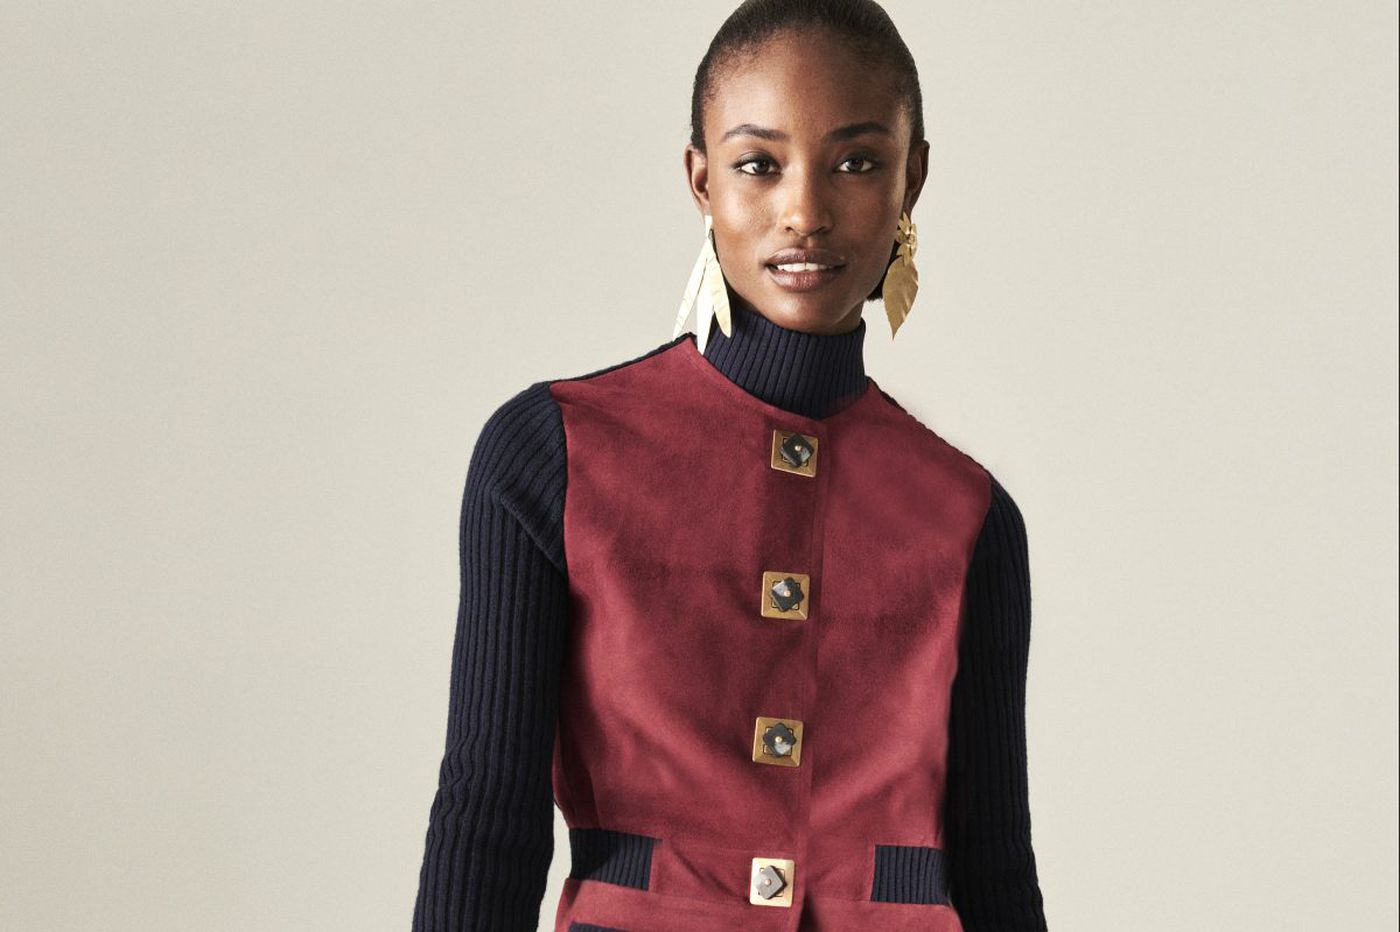 Tory Burch's resort line speaks to empowering friendships between women